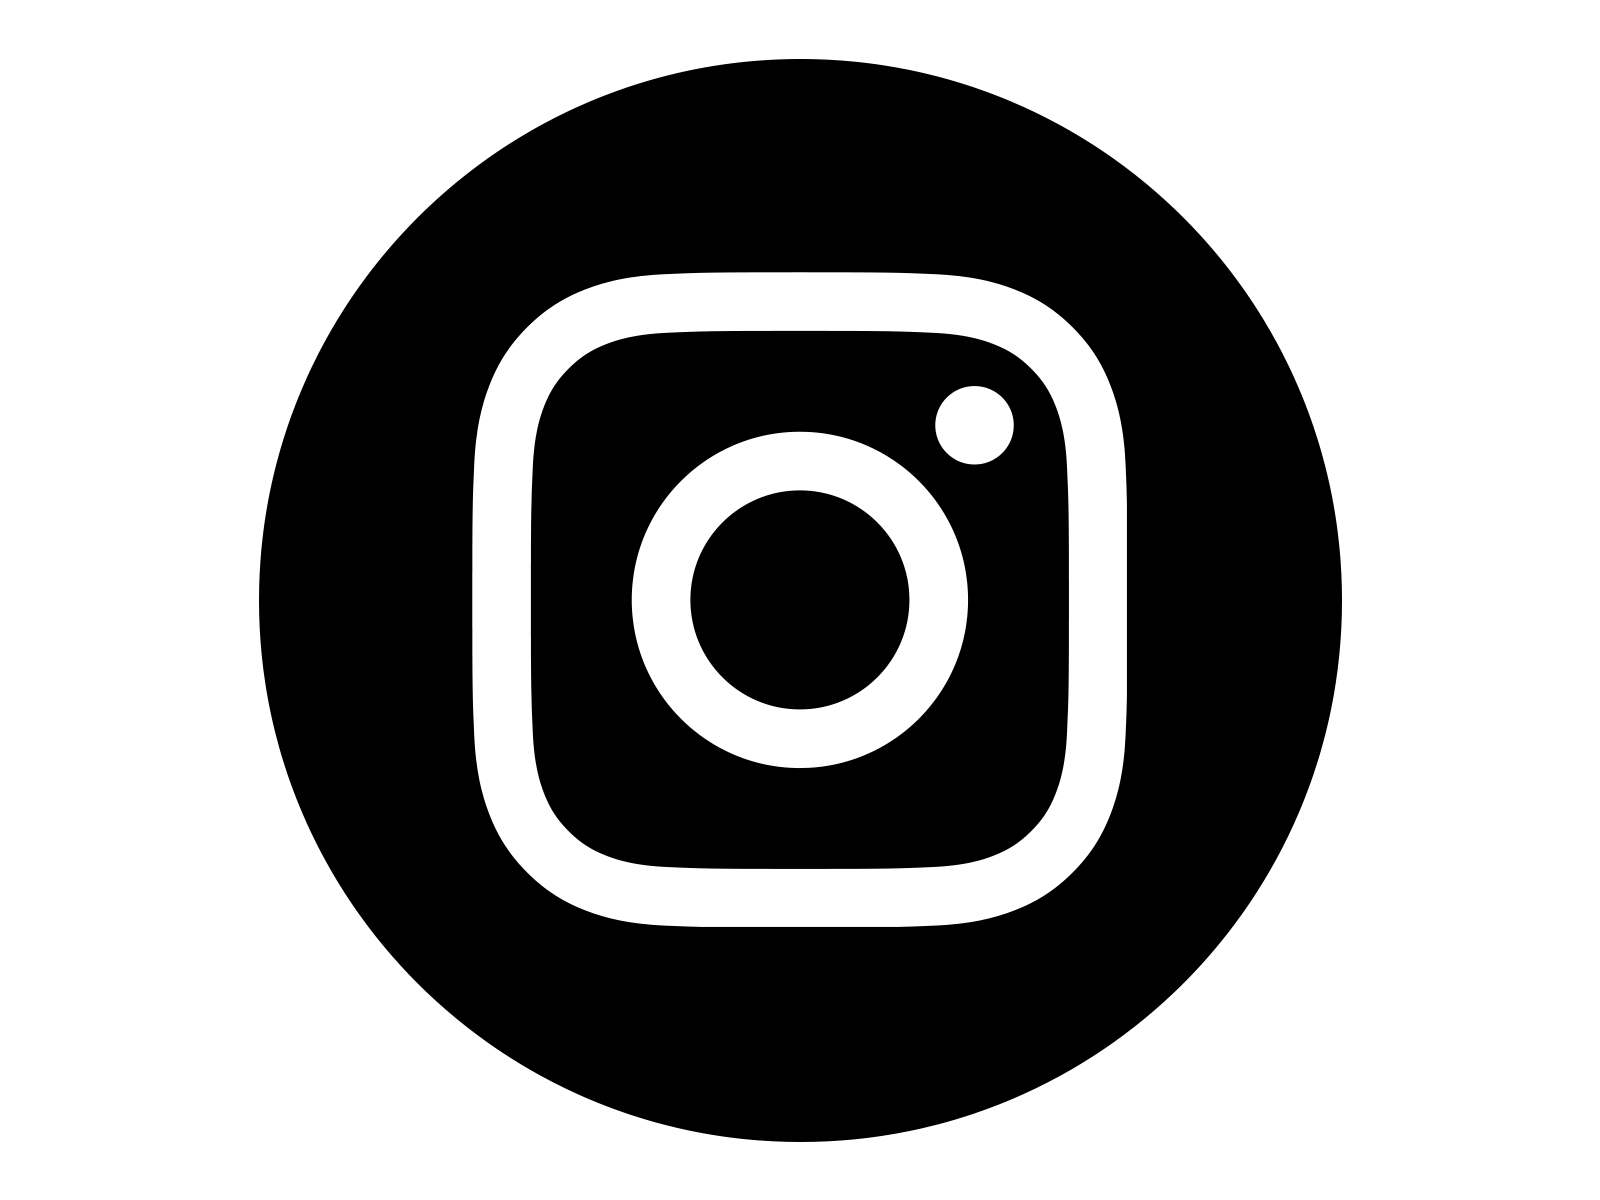 Instagram Icon White on Black Circle - Logo Instagram PNG